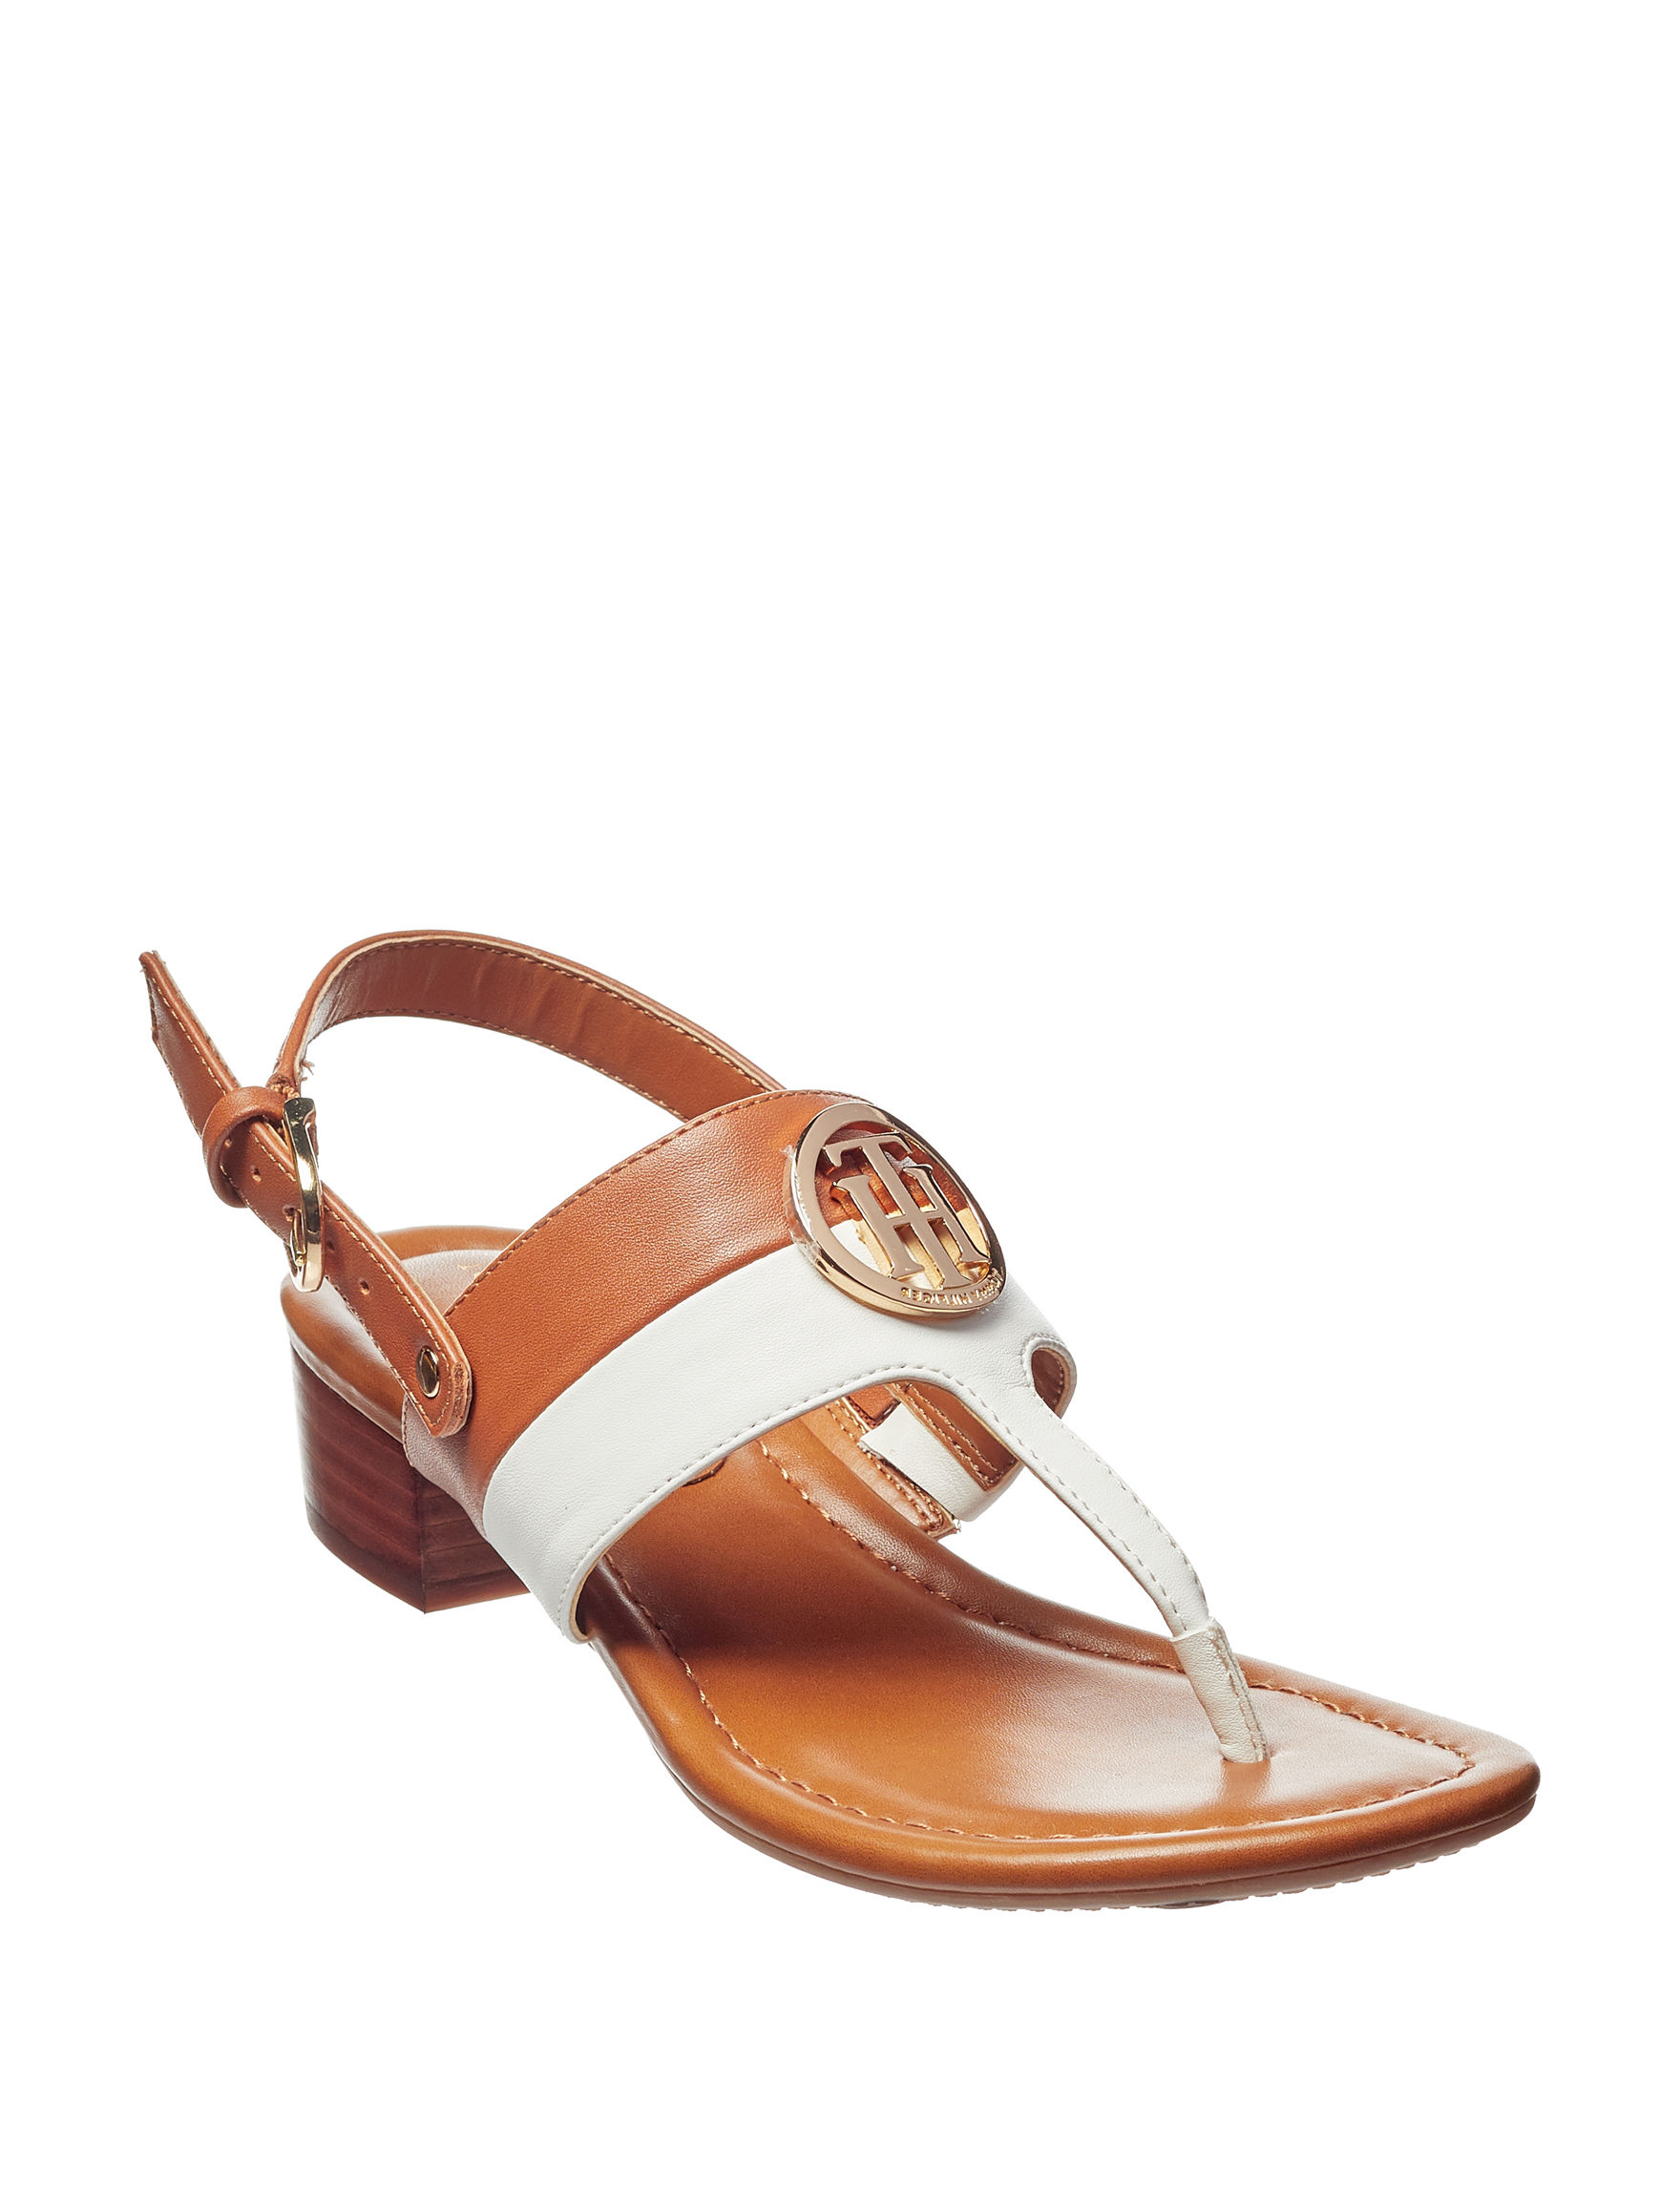 Tommy Hilfiger Beige Heeled Sandals